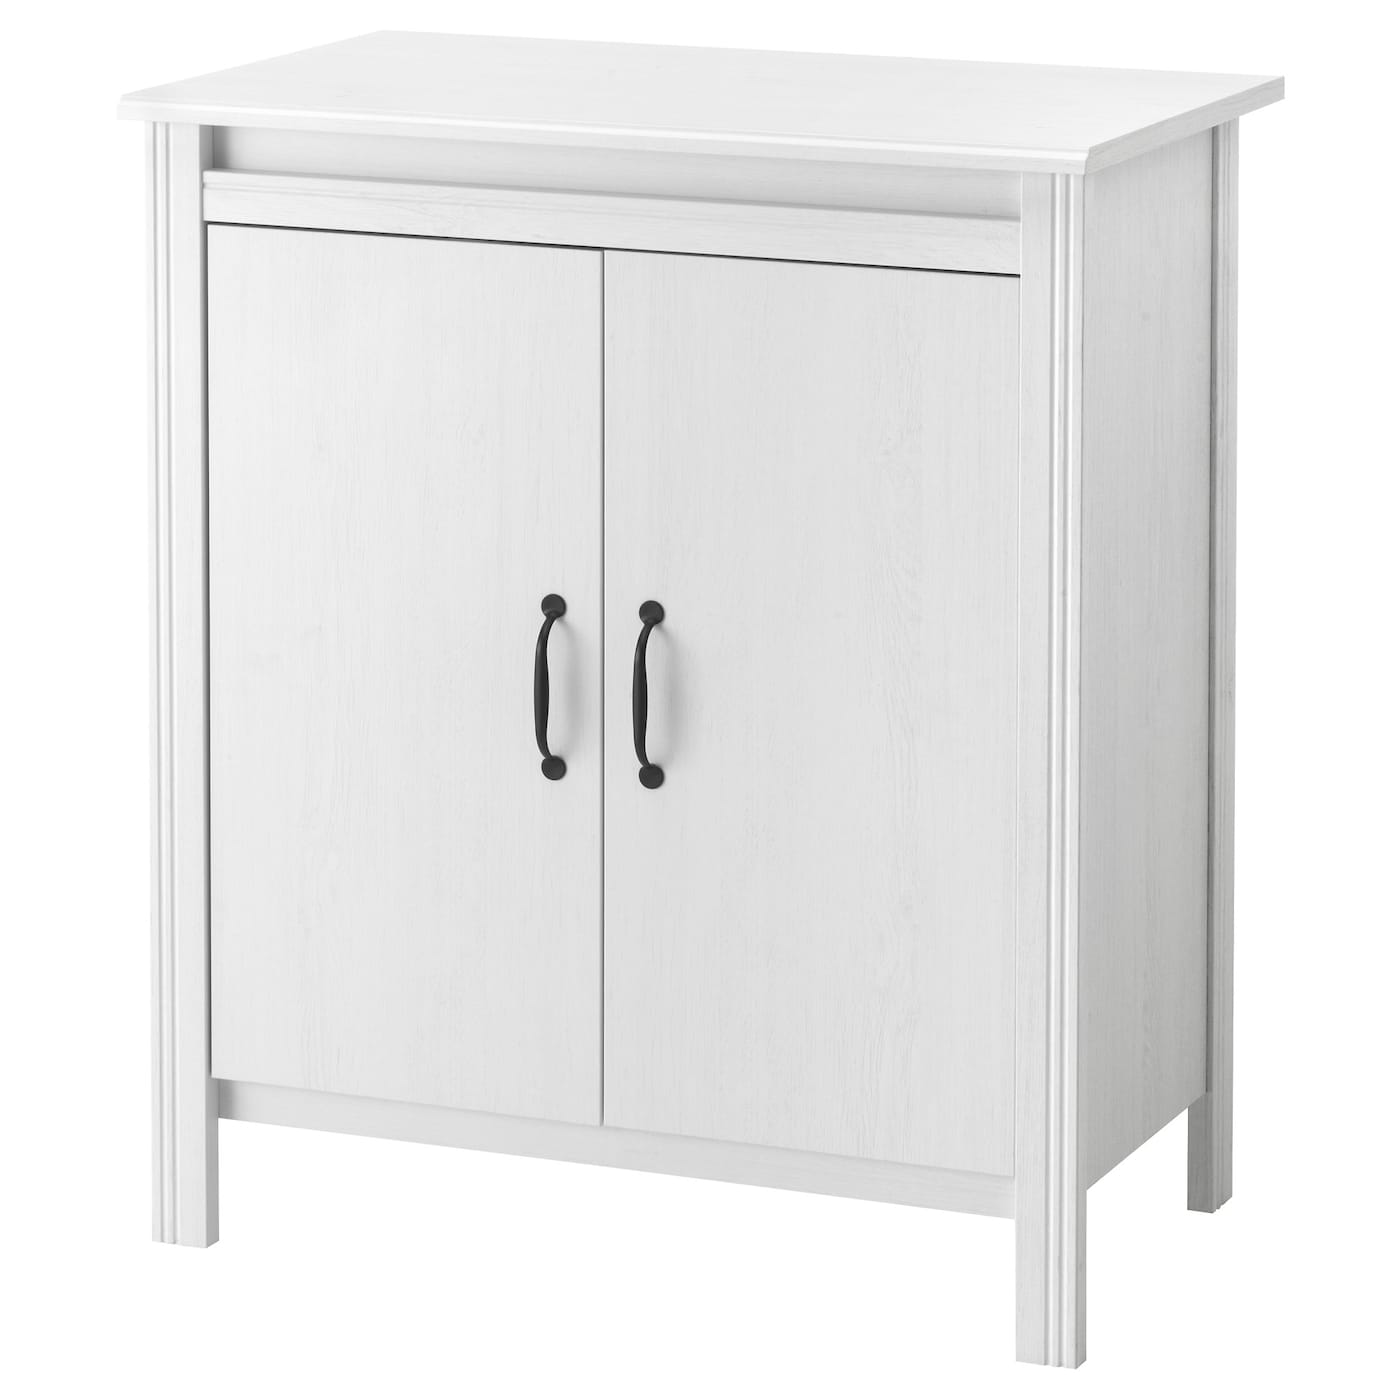 brusali cabinet with doors white 80 x 93 cm ikea. Black Bedroom Furniture Sets. Home Design Ideas